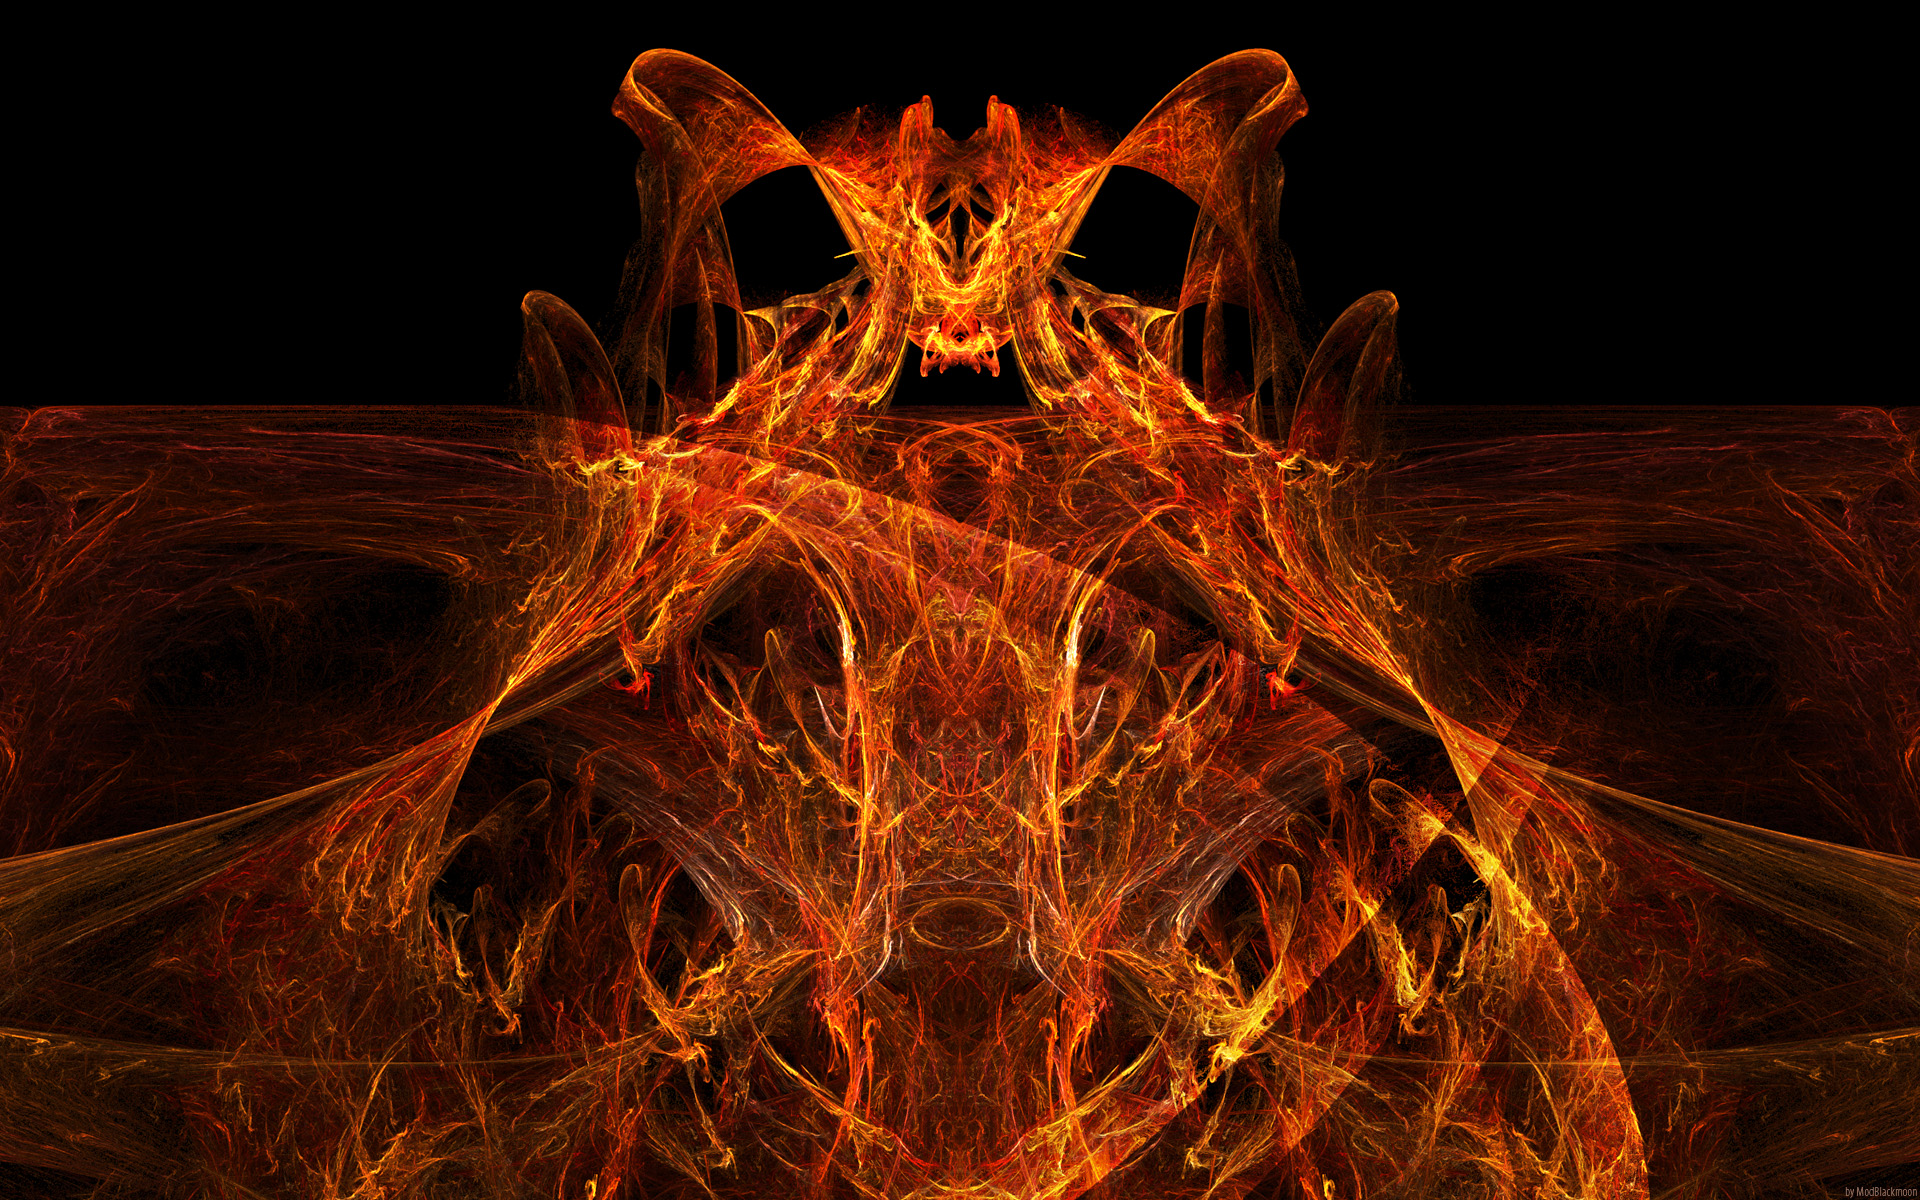 Abstract Demon Lord fractal red infernal flames Wallpaper 1920x1200